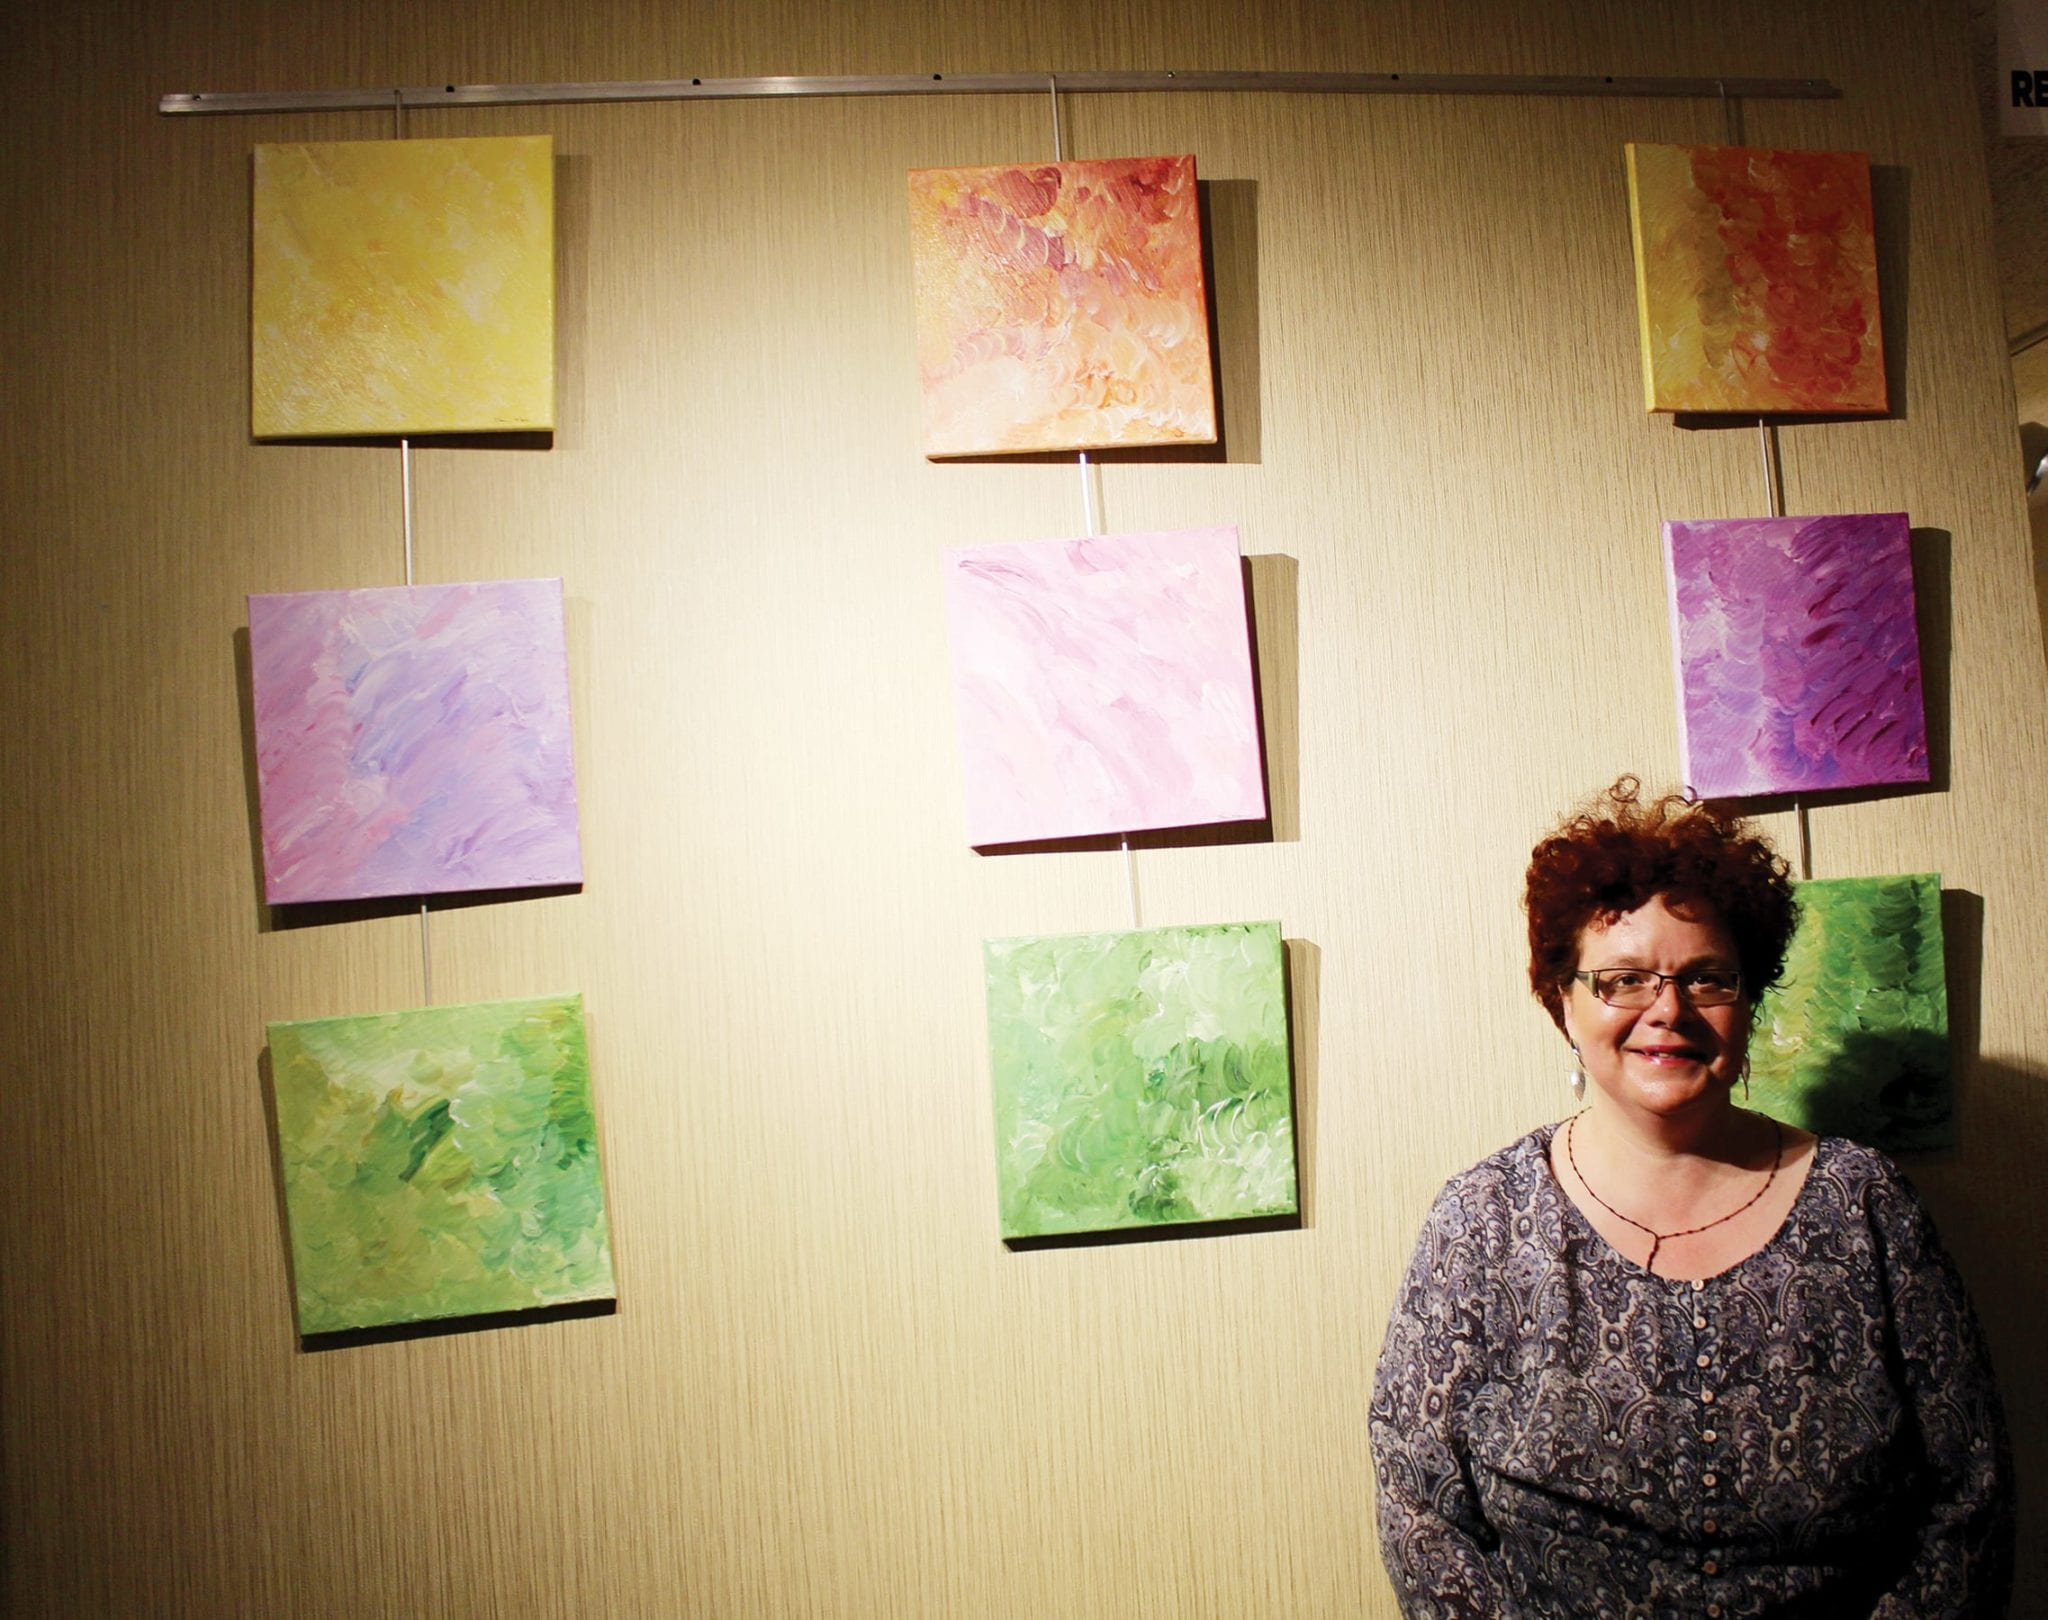 From the Liverpool Public Library: Meet the artist of the month: Karen Koegel